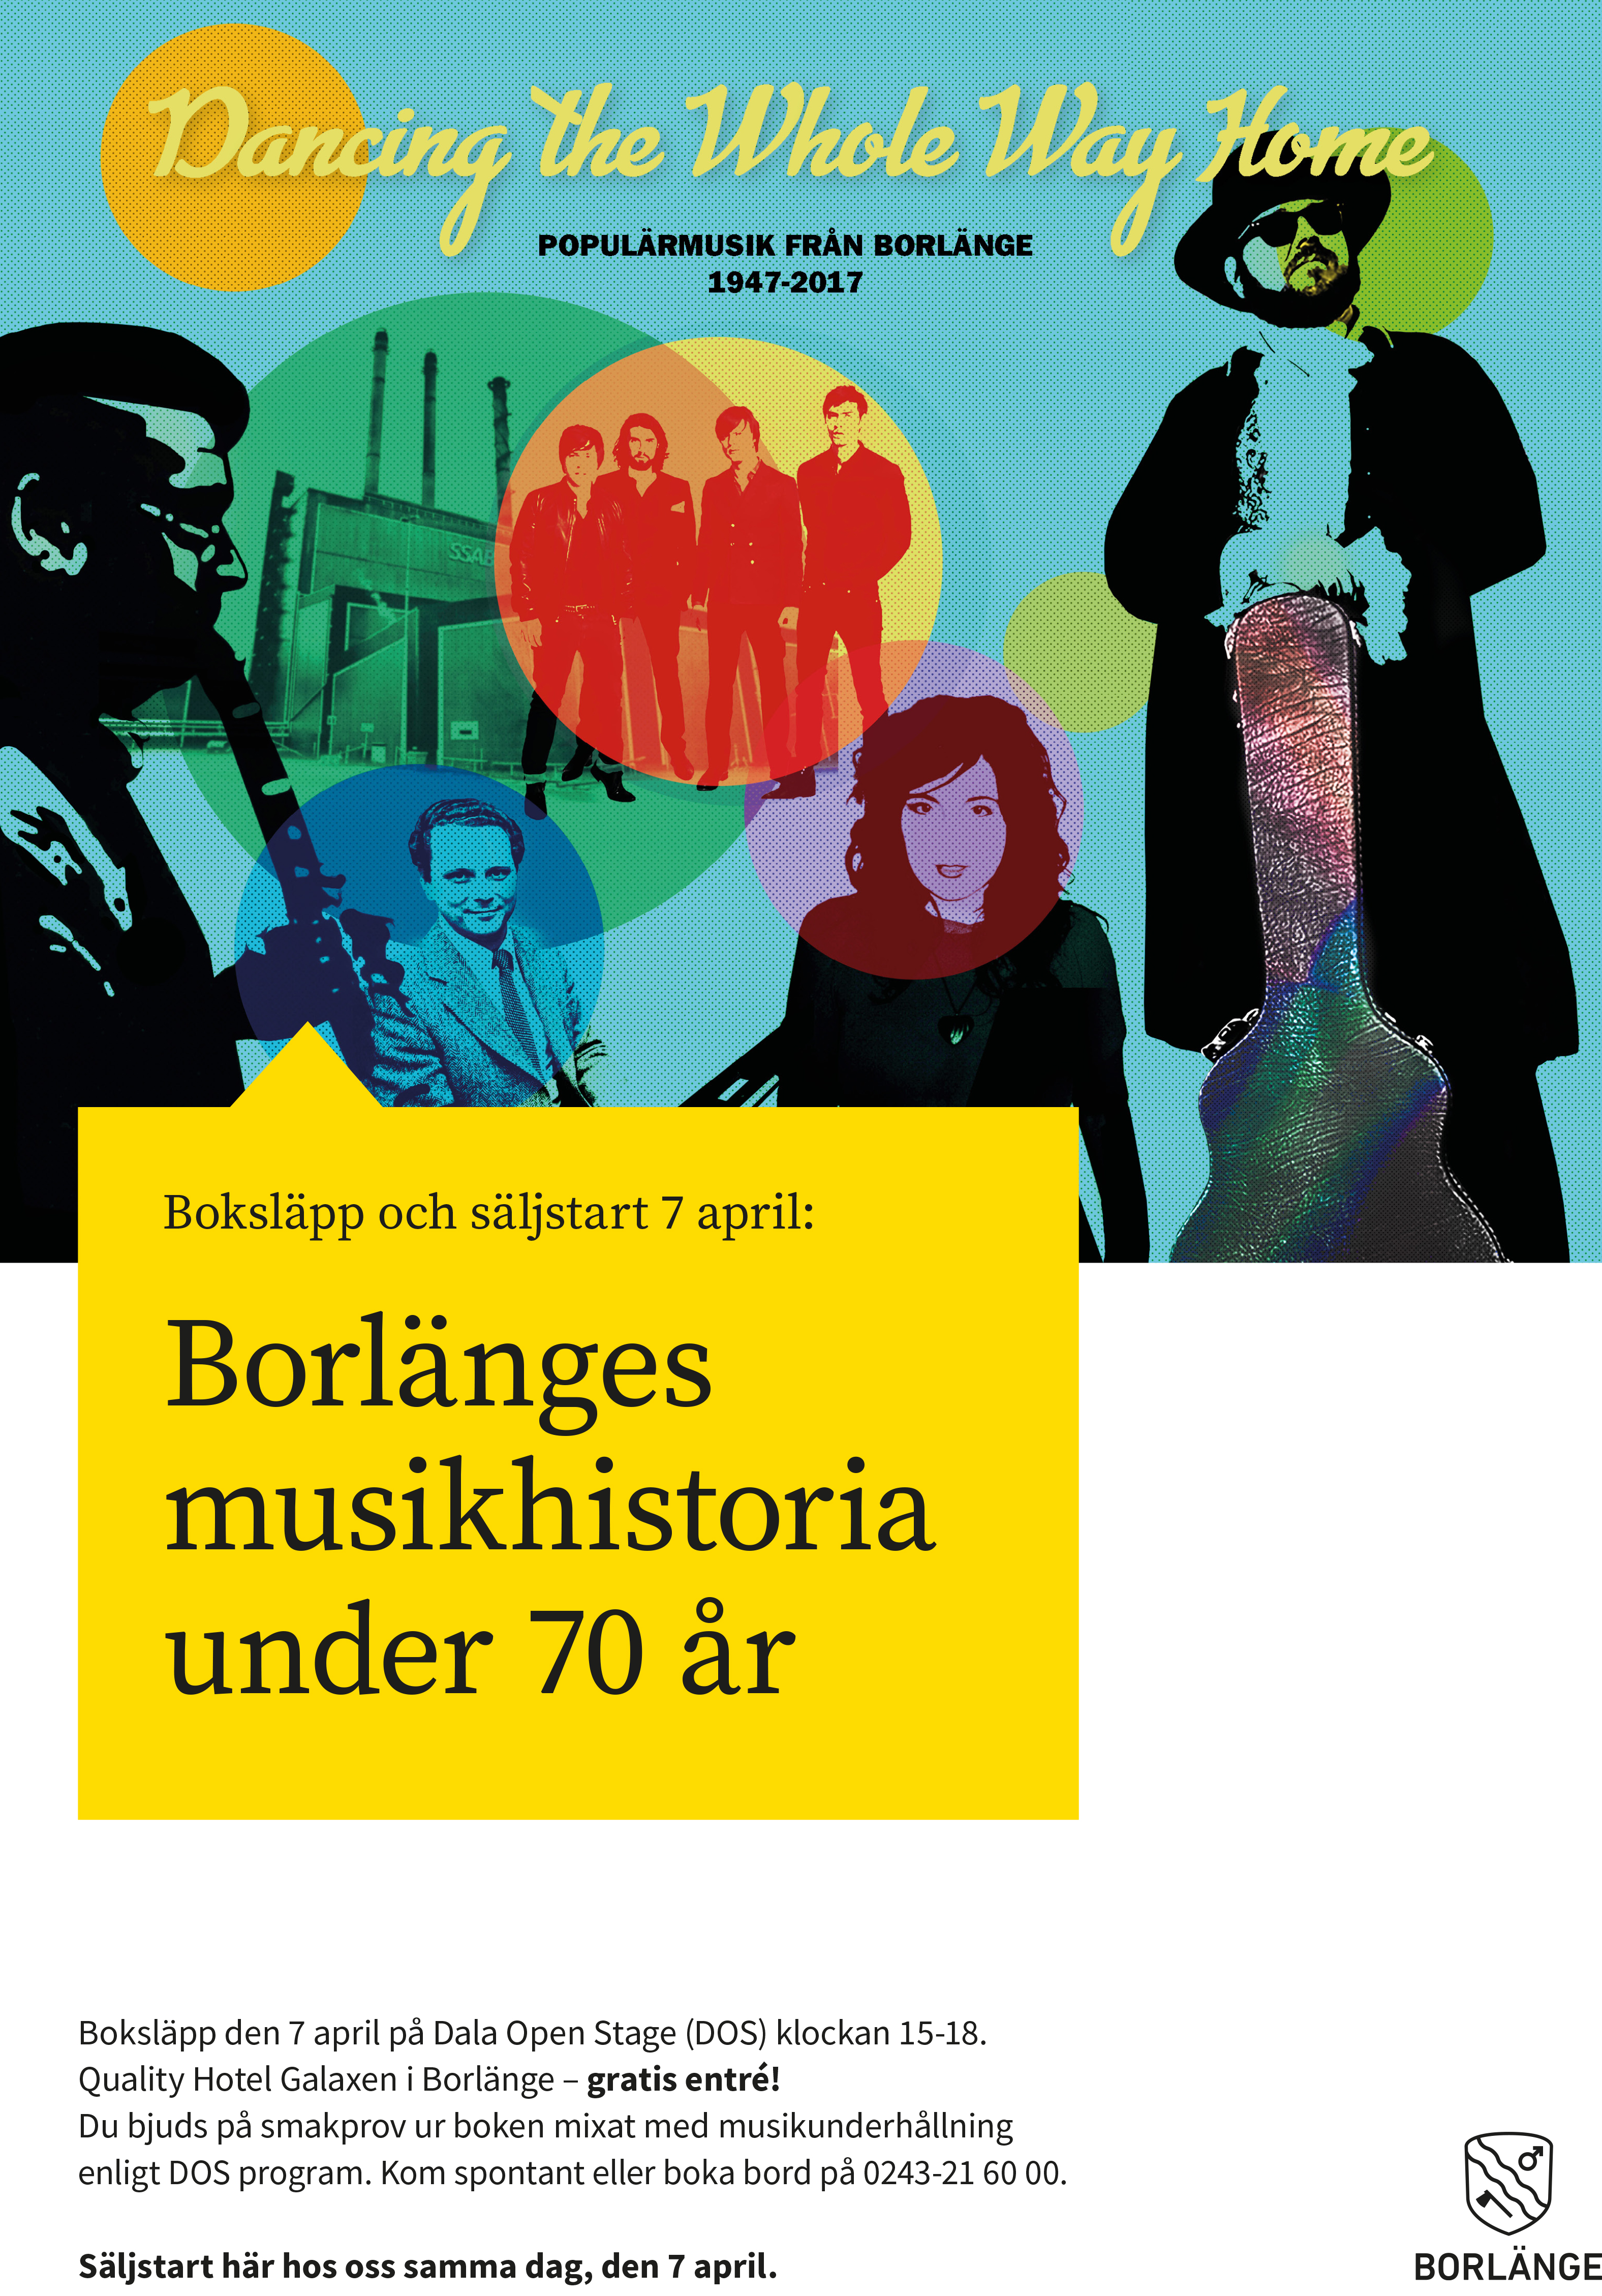 Boken Dancing the Whole Way Home – populärmusik från Borlänge under 70 år